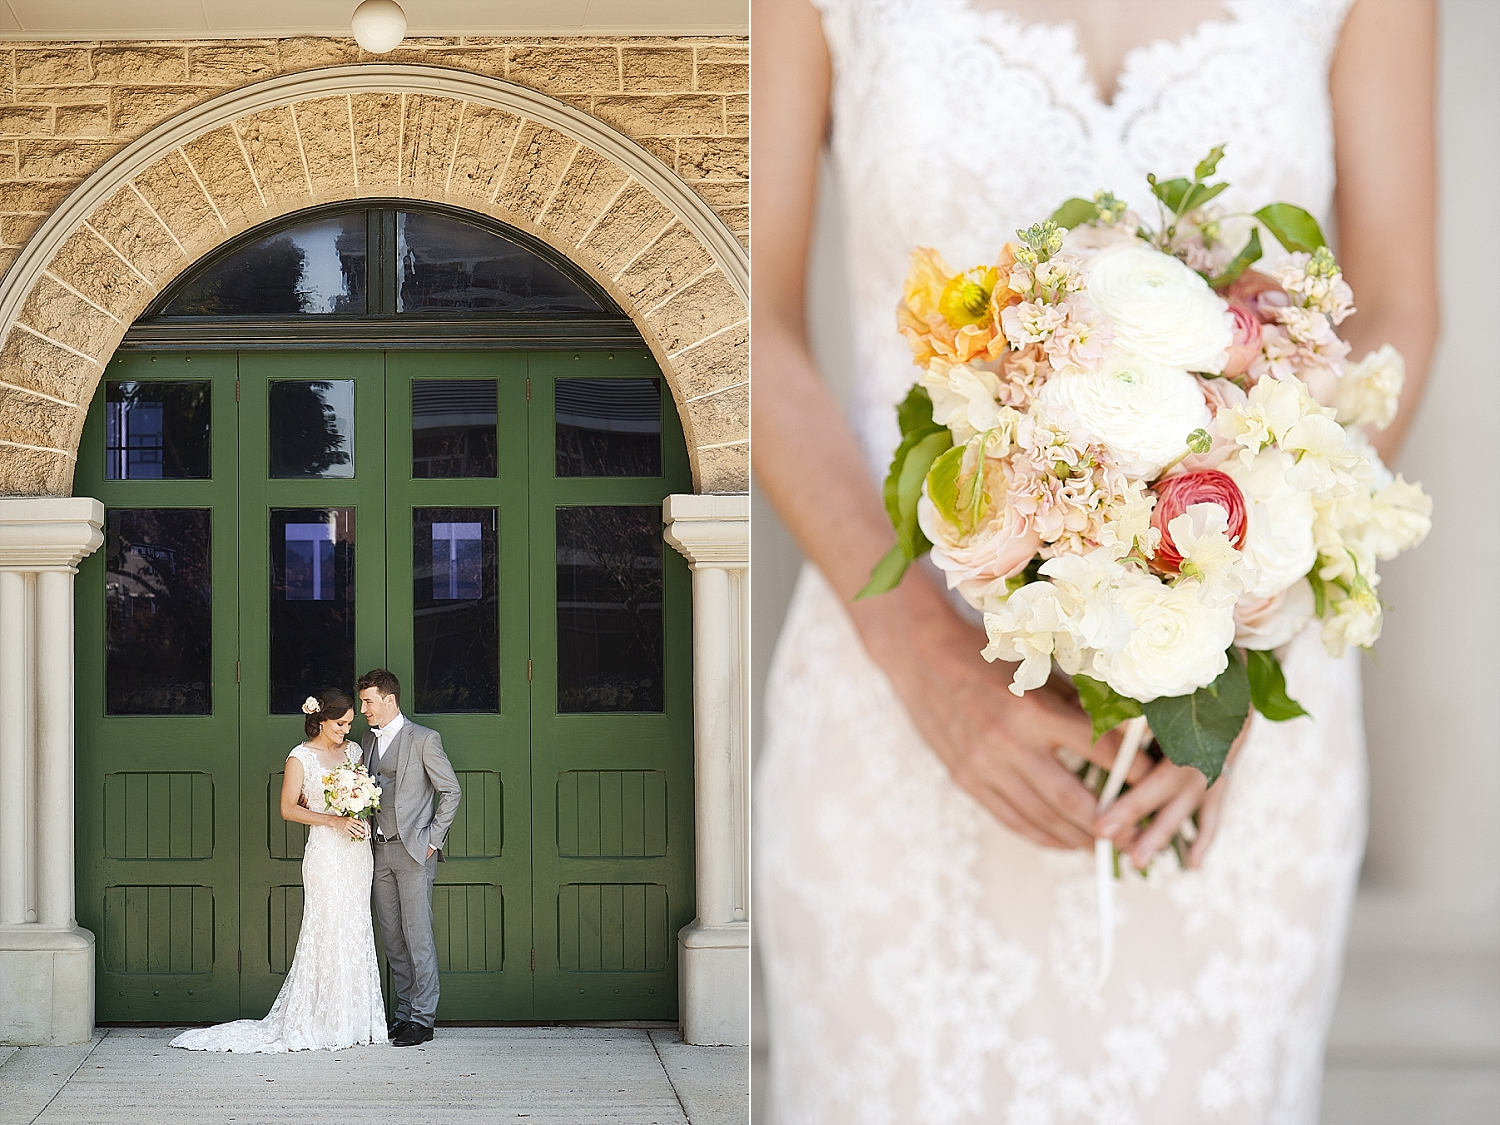 29 bride and groom at old fire station murray st perth.jpg